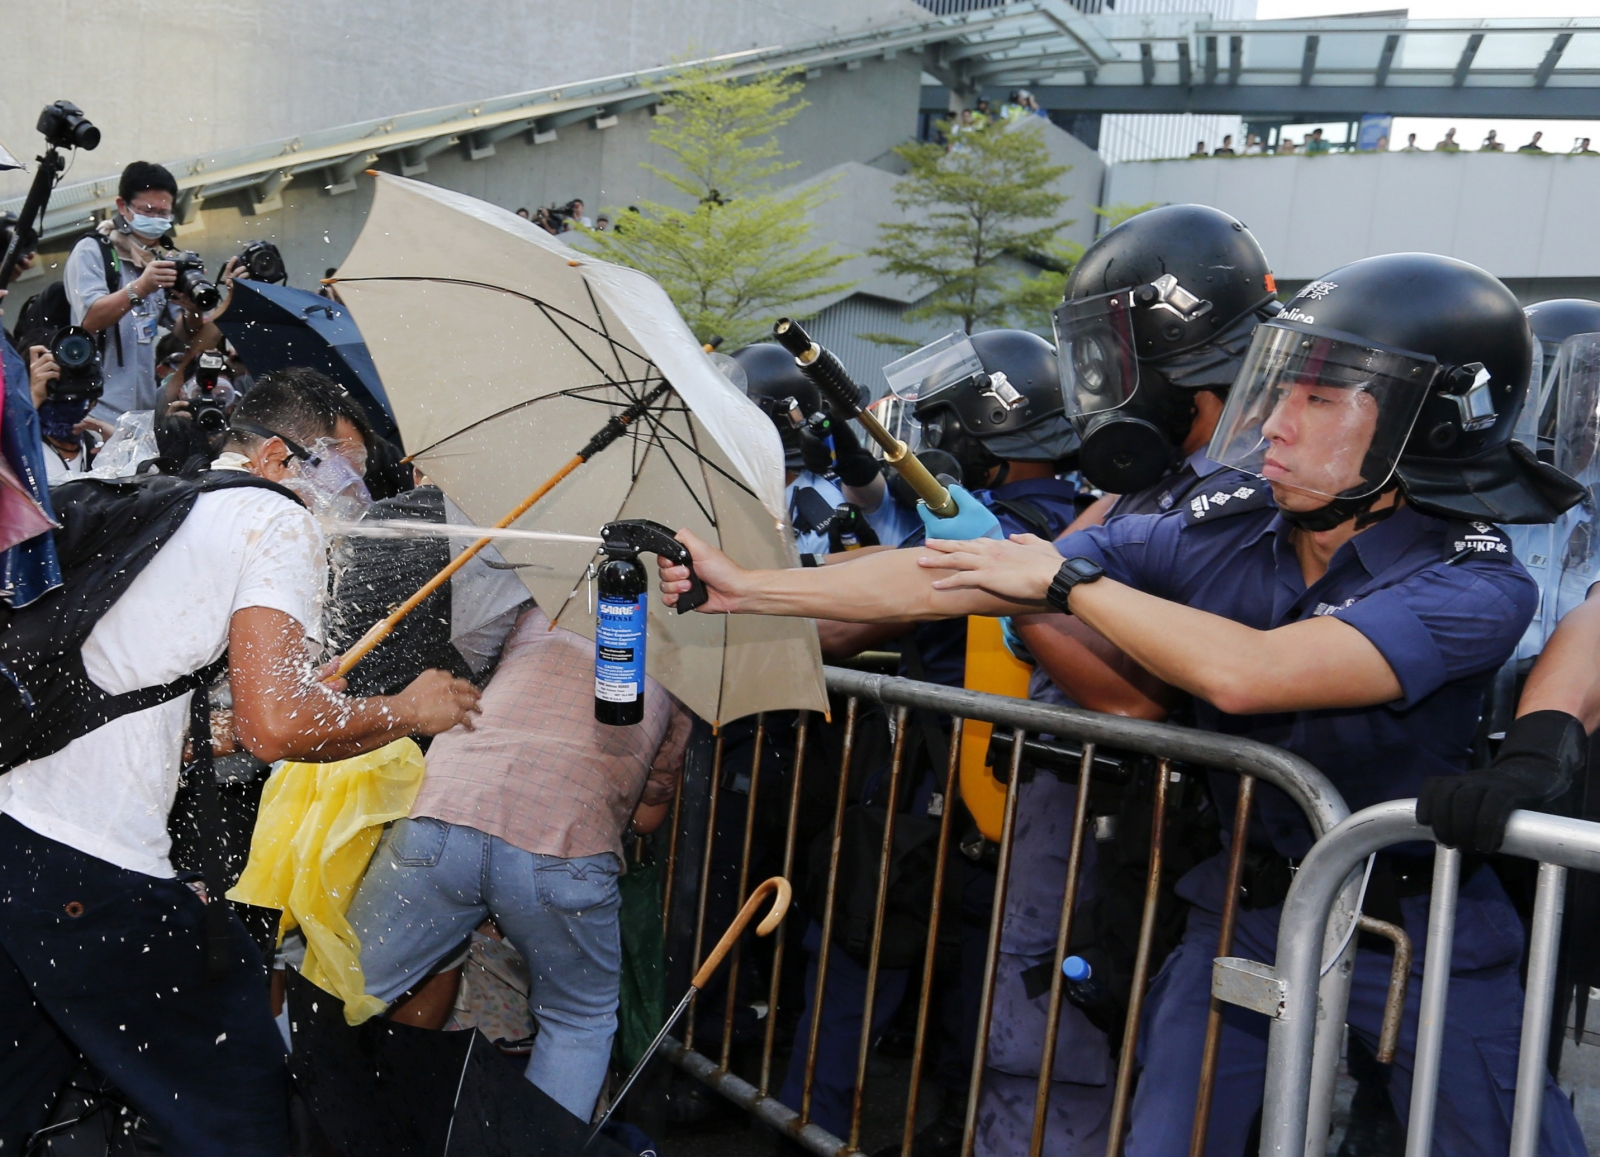 Hong Kong Occupy Central - police using pepper spray on protestors